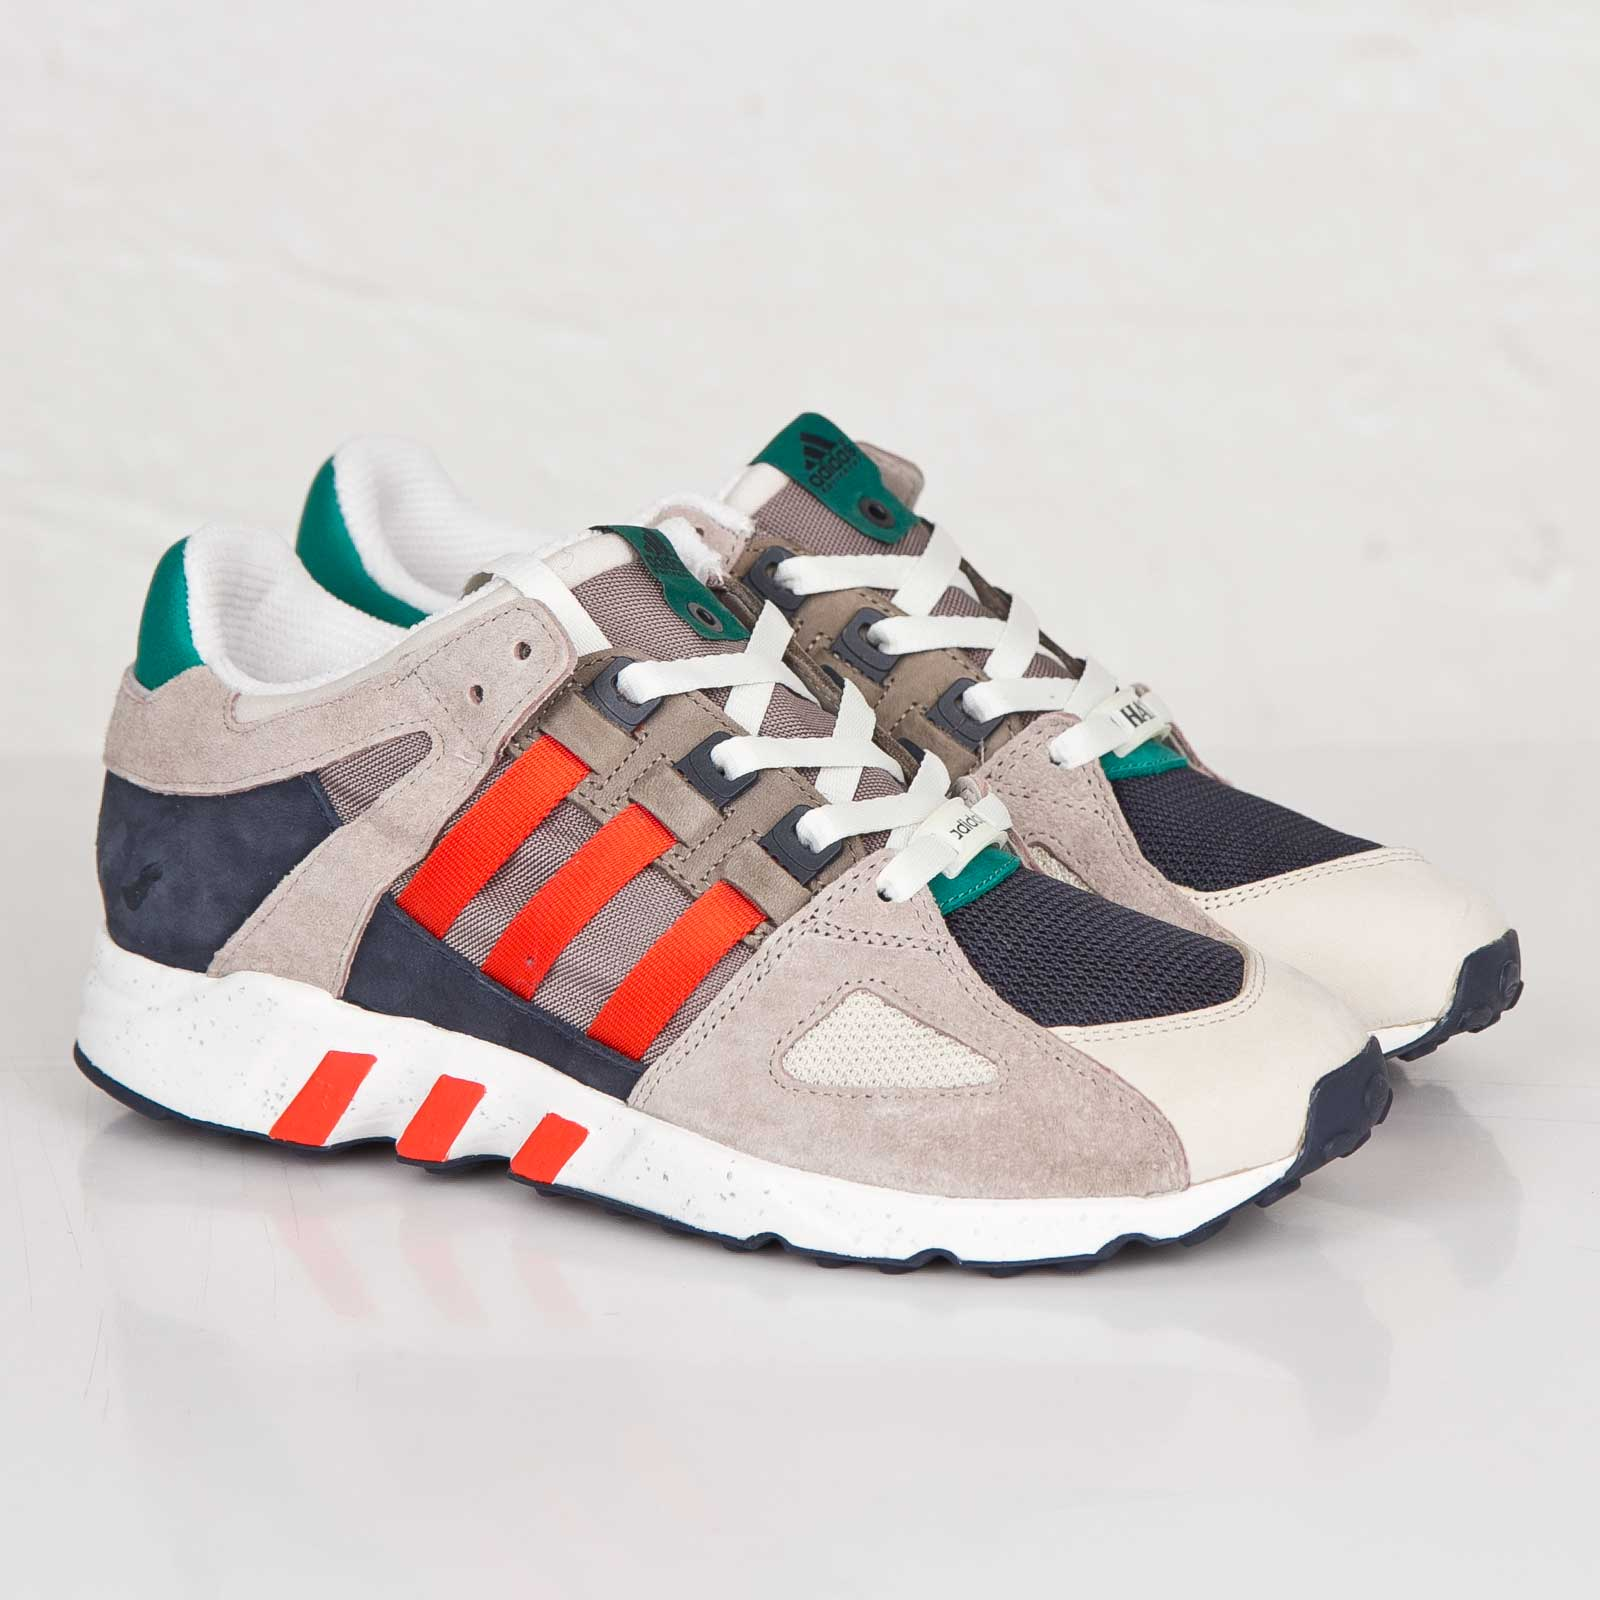 online retailer 9f1b5 3ee97 adidas Equipment RNG Guidance 93